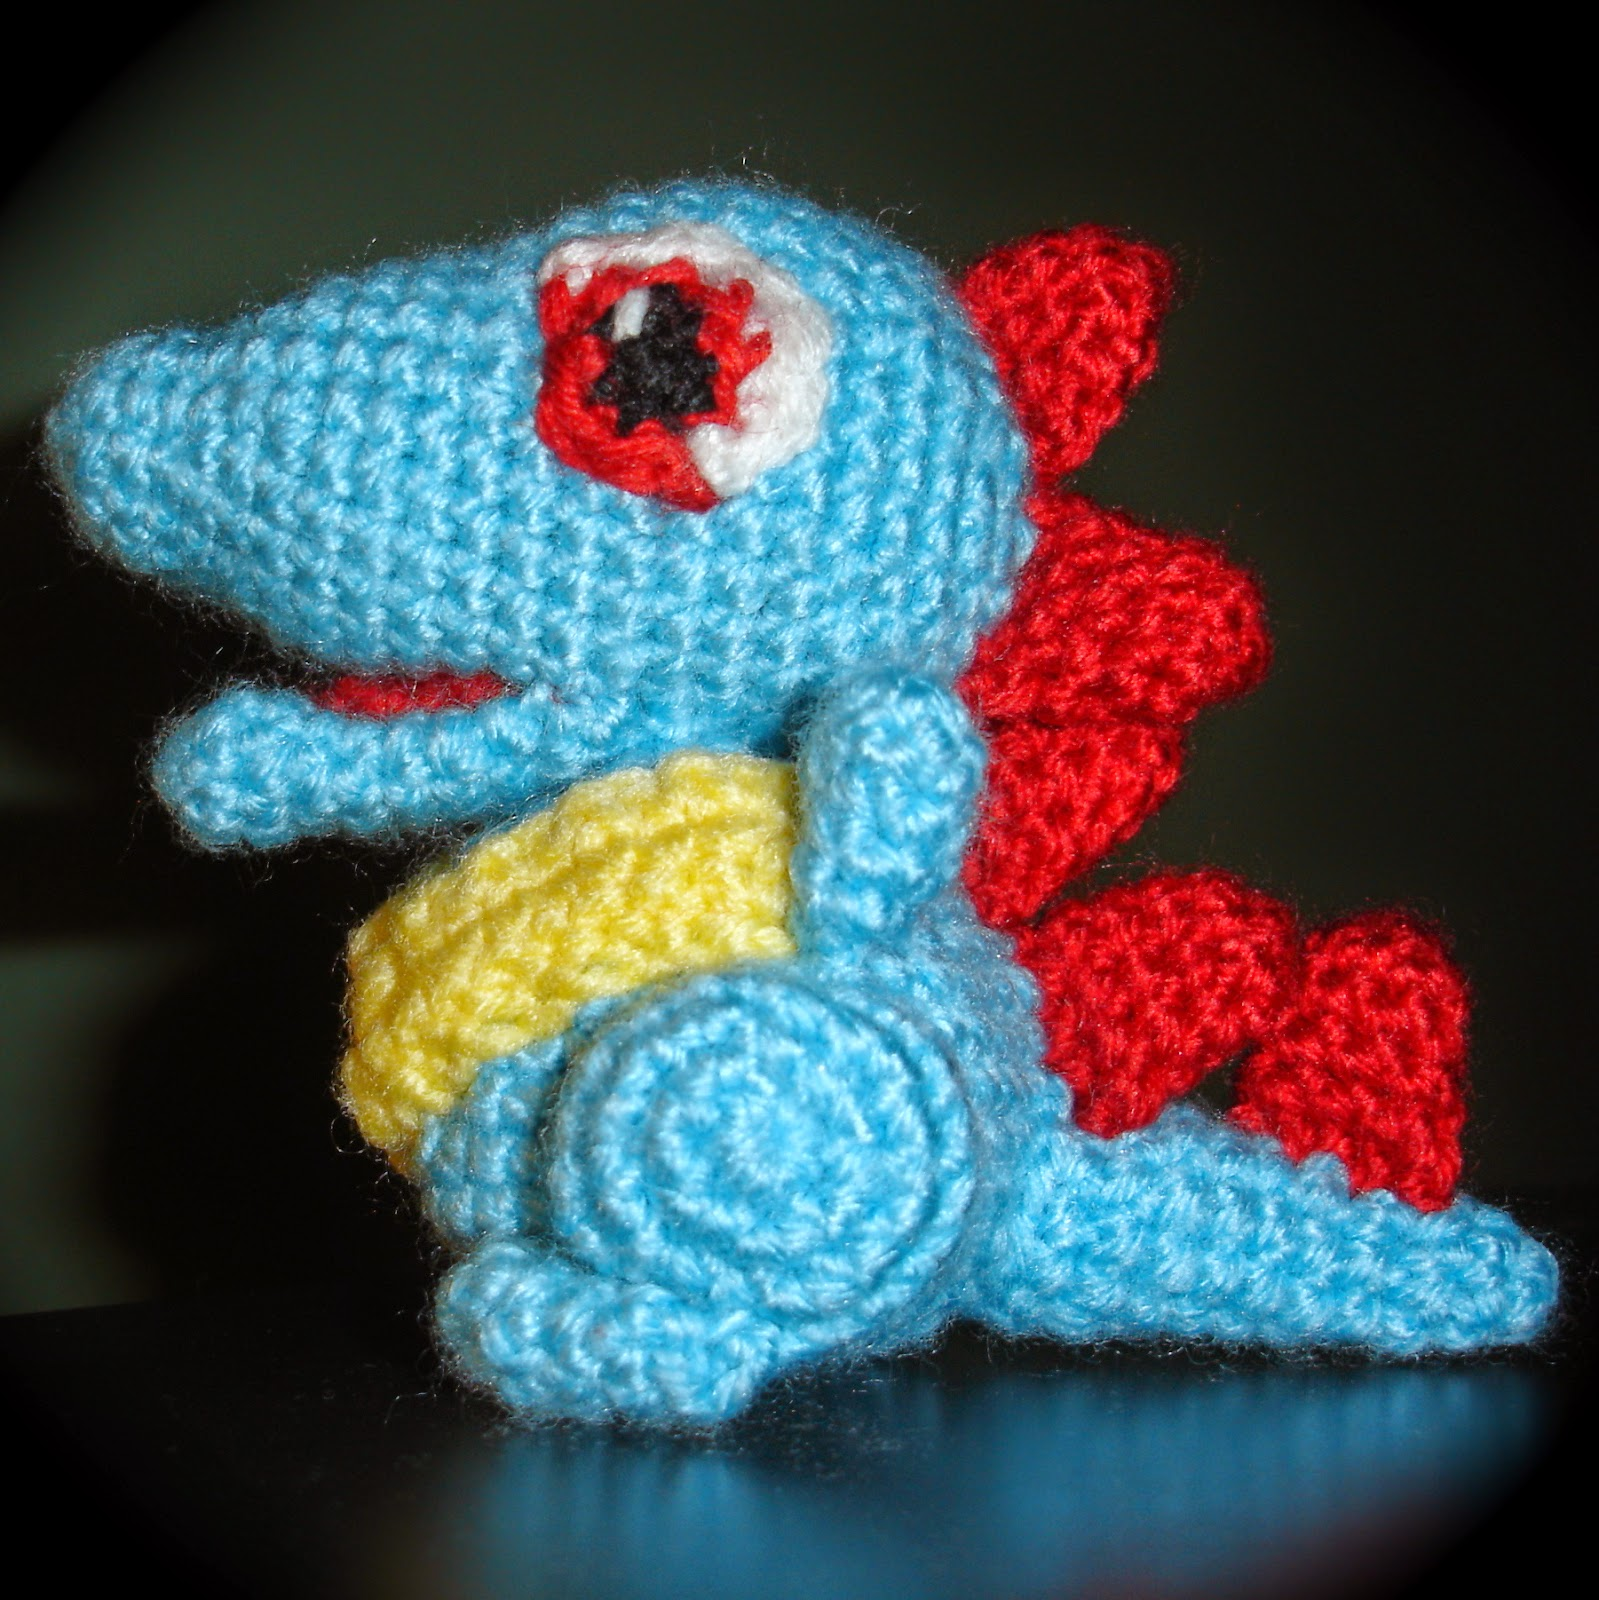 Crochet Patterns Pokemon Characters : Free Patterns by H: Totodile Pokemon Pattern